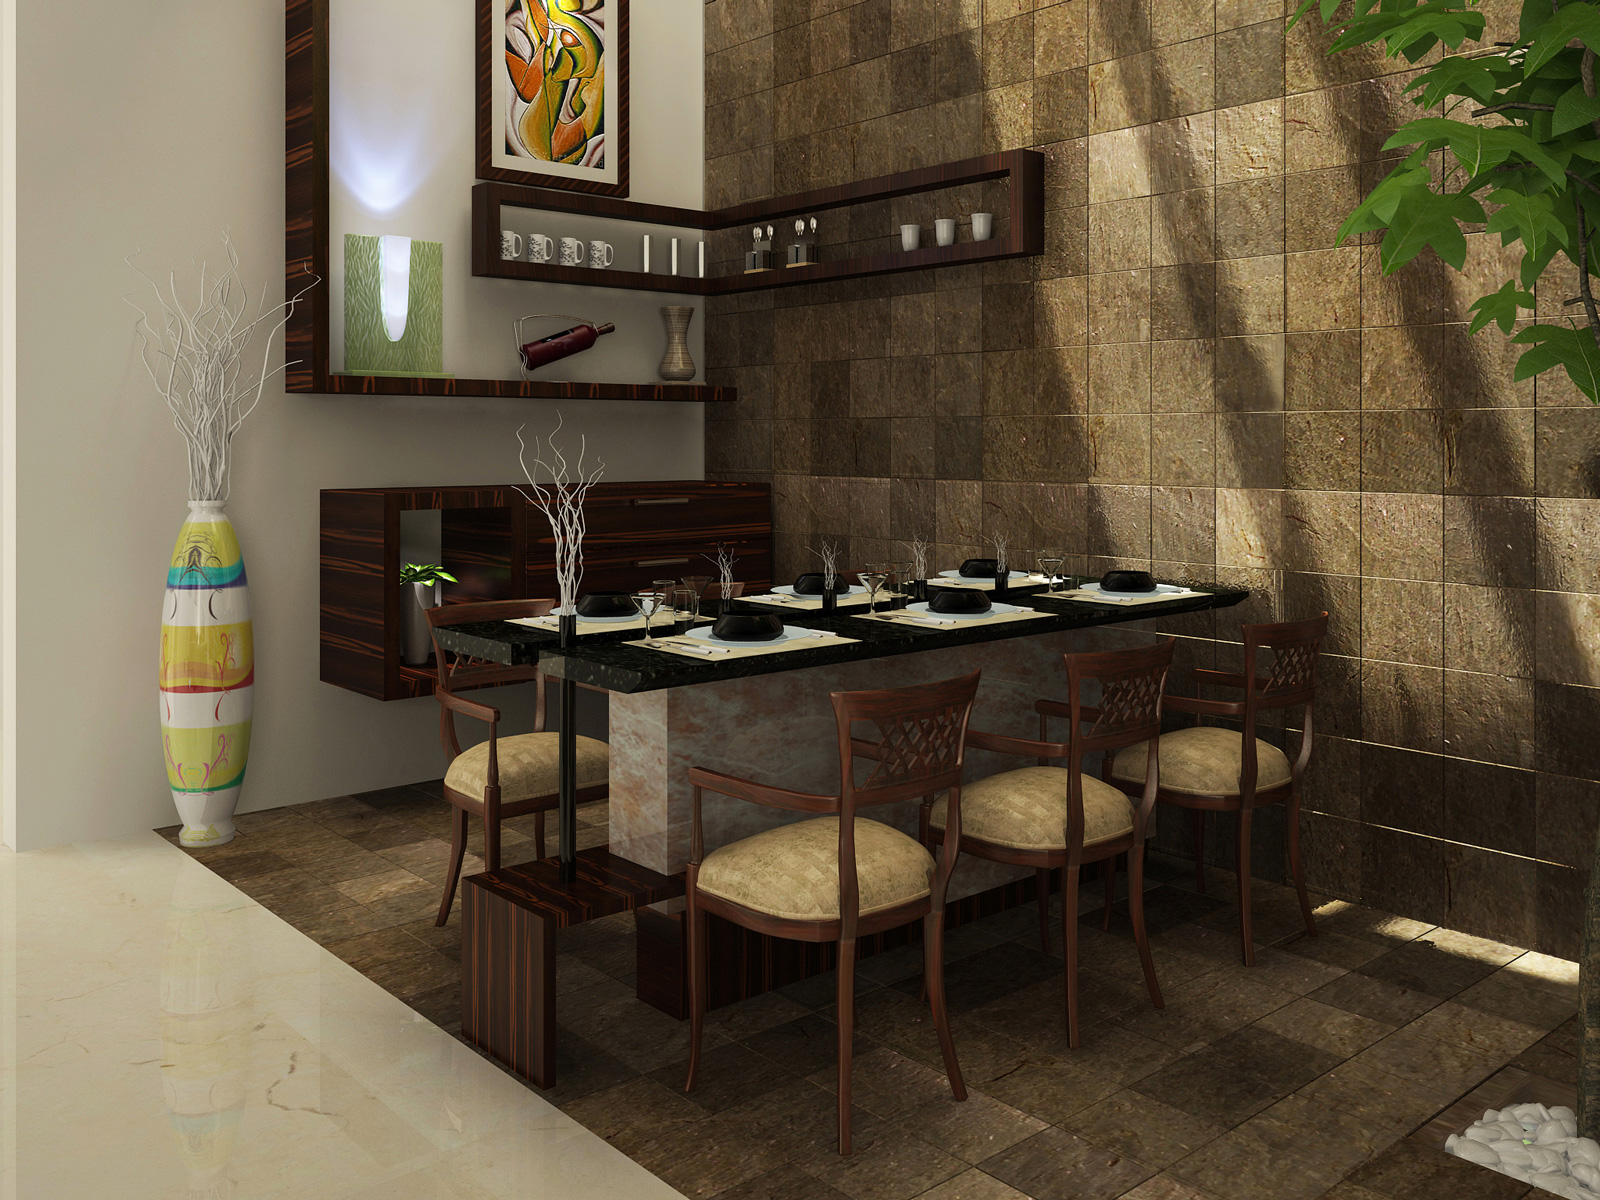 Dining kitchen living room interior designs kerala home for Dining home design